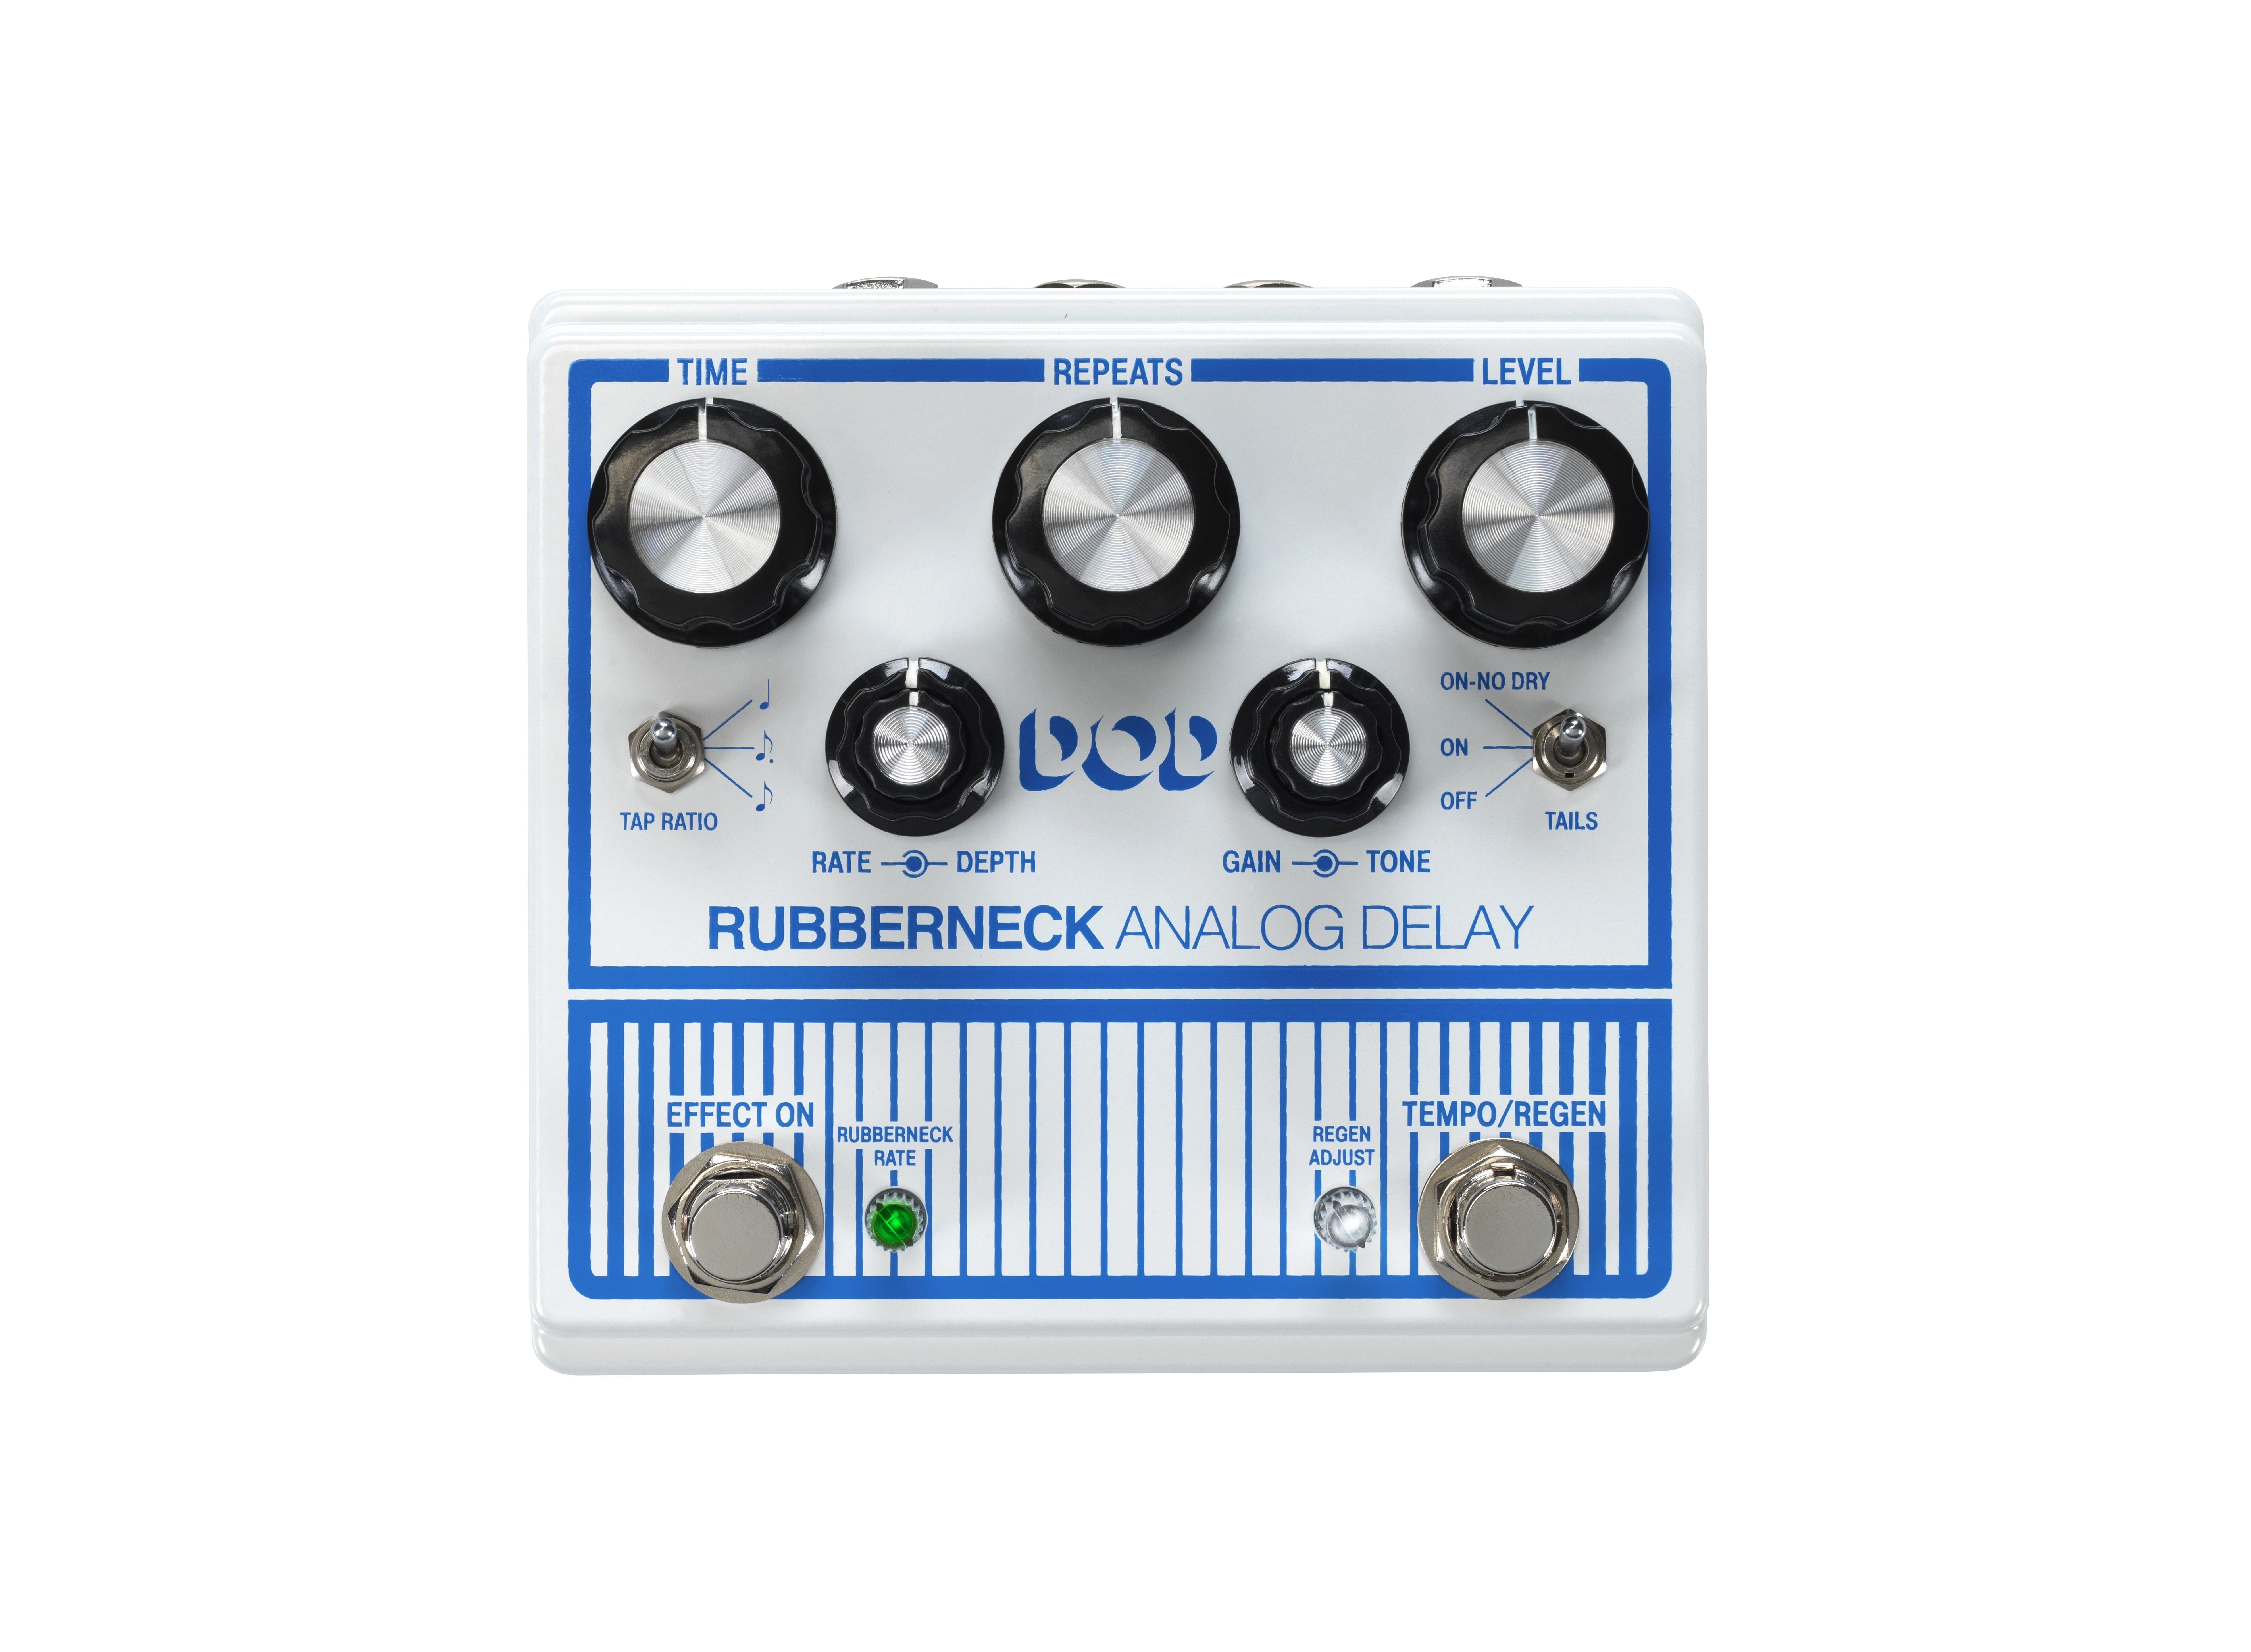 Dod Rubberneck Digitech Guitar Effects Turn On Delay Circuit That Resets Nice And Quick Youtube Analog